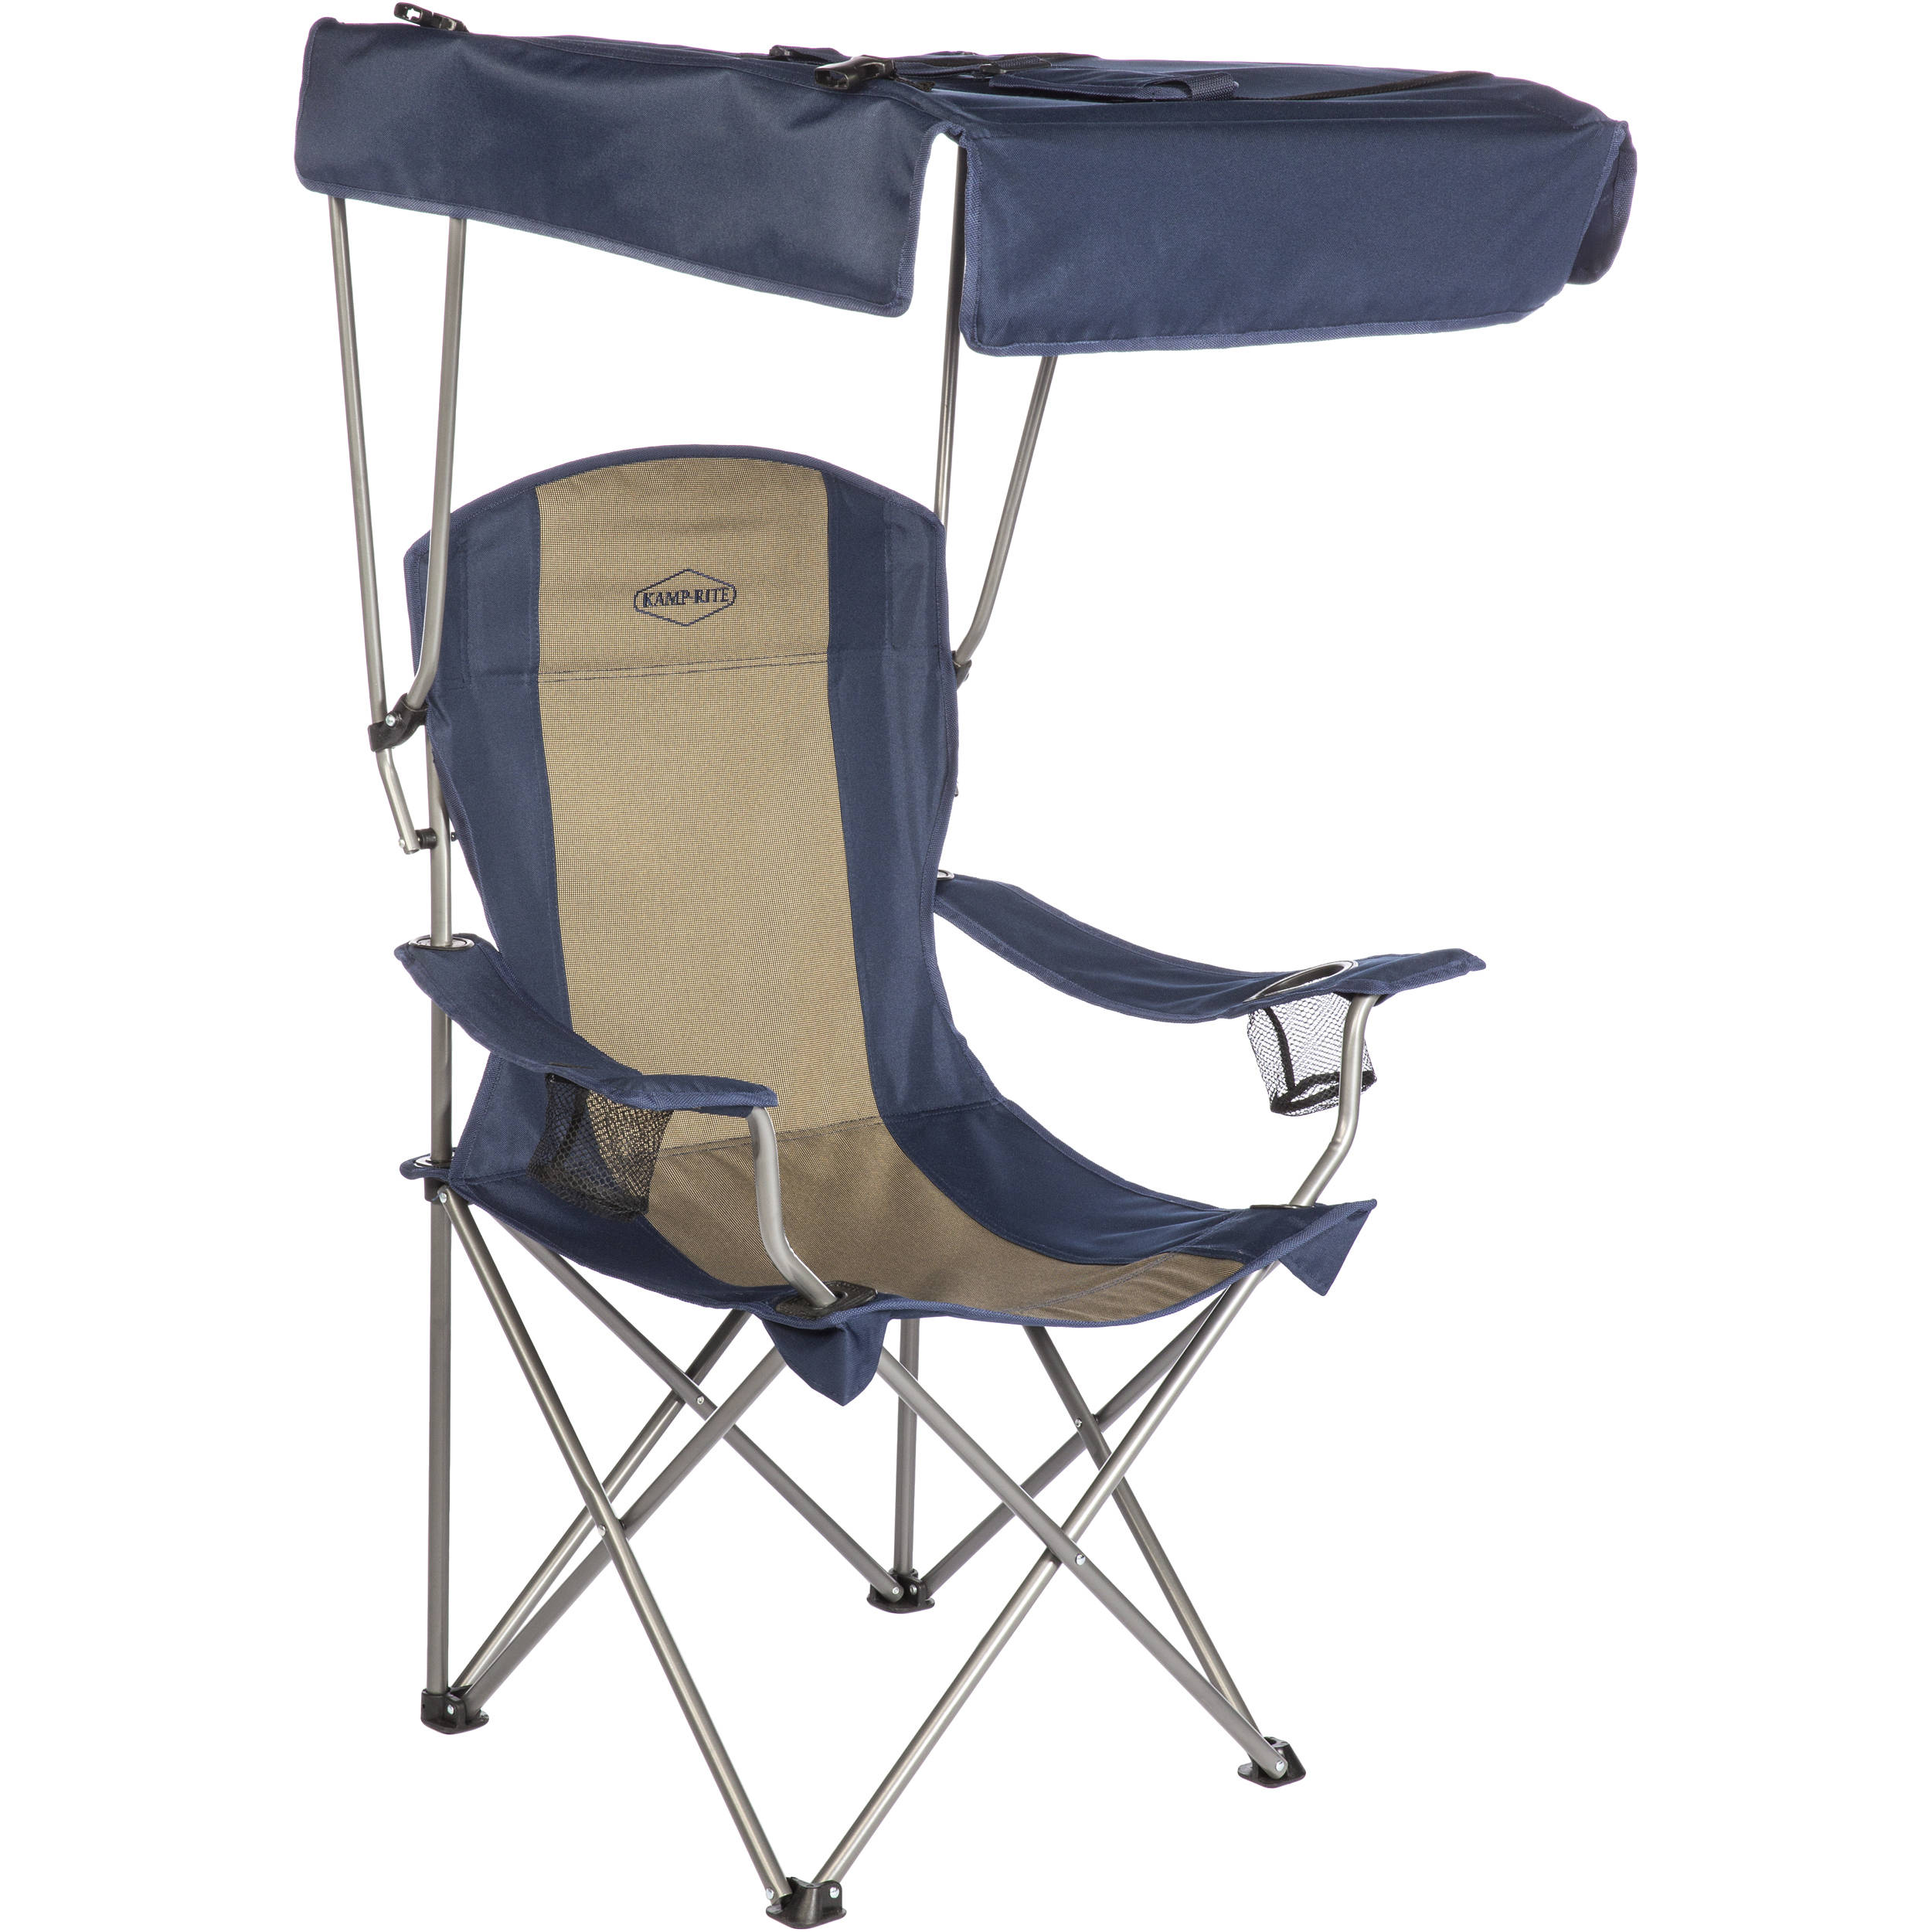 KAMP RITE Folding Chair with Shade Canopy CC463 B&H Video